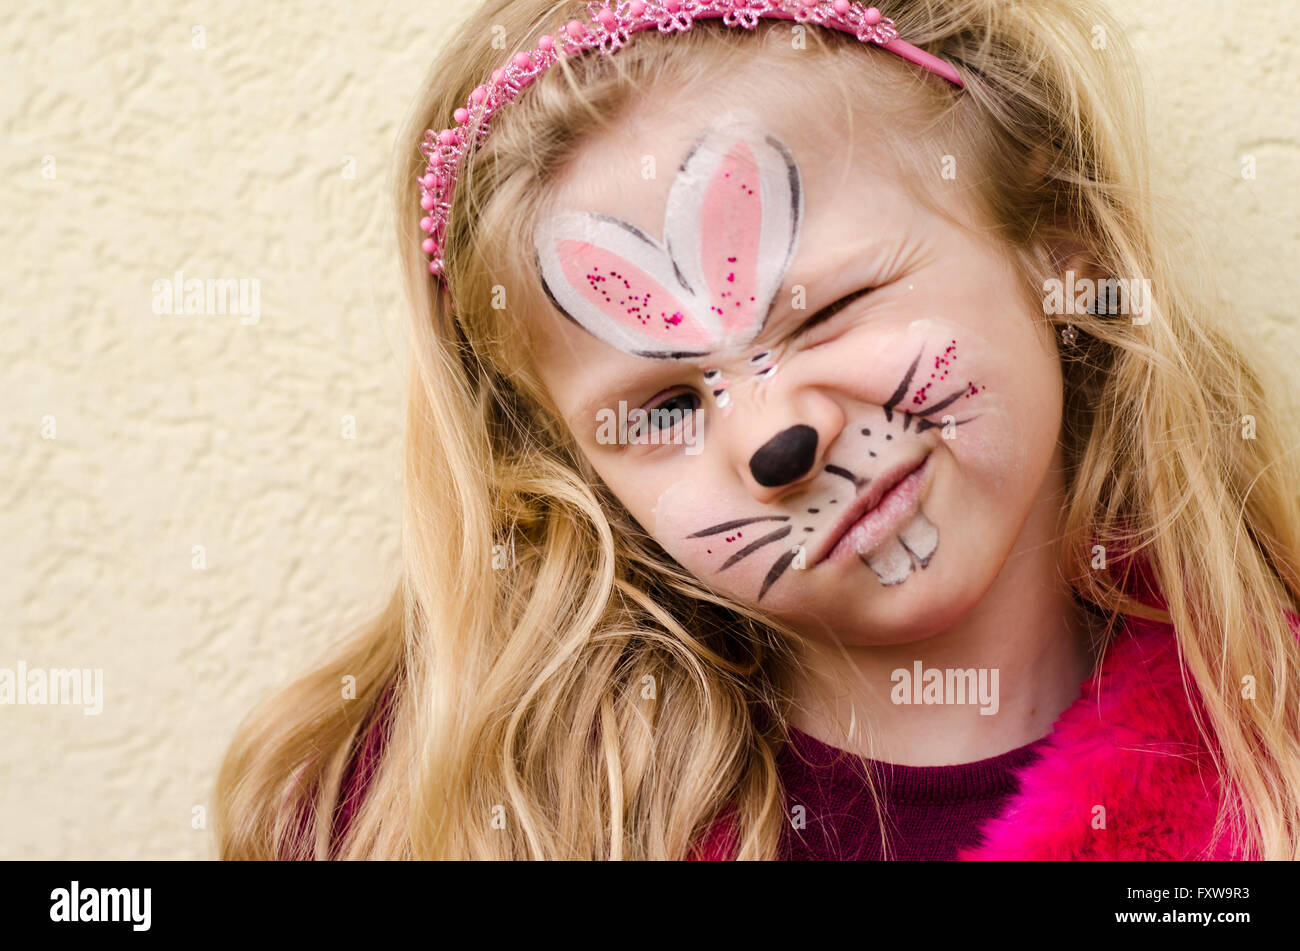 girl rabbit face painting stockfotos girl rabbit face painting bilder alamy. Black Bedroom Furniture Sets. Home Design Ideas